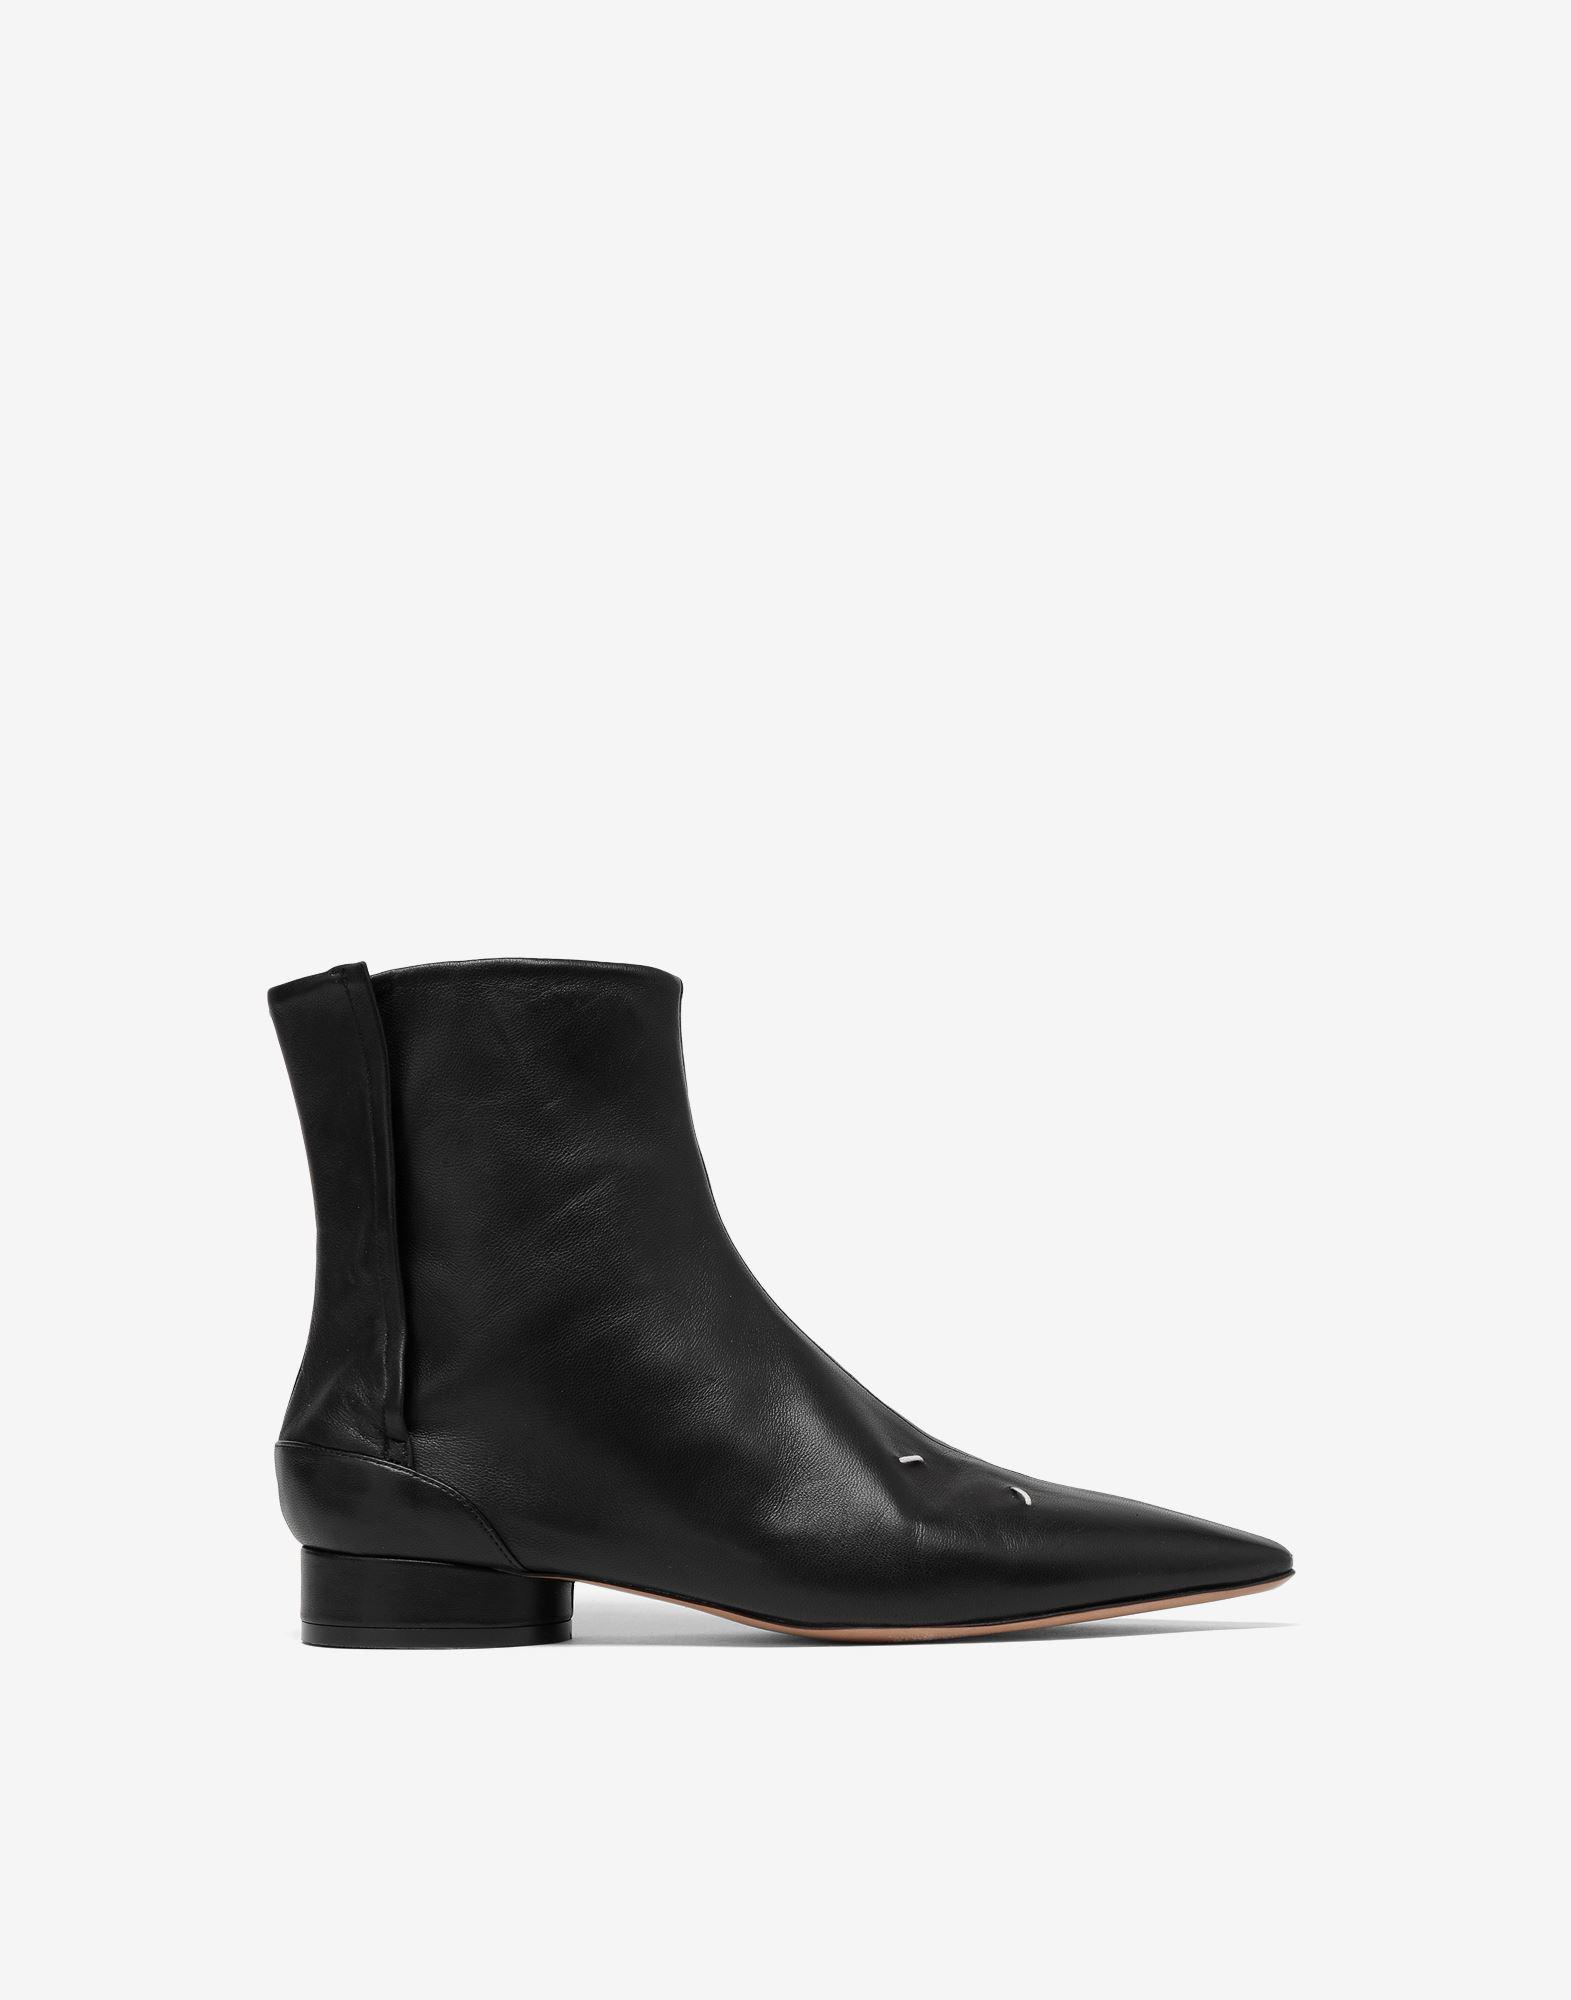 4-stitches leather ankle boots